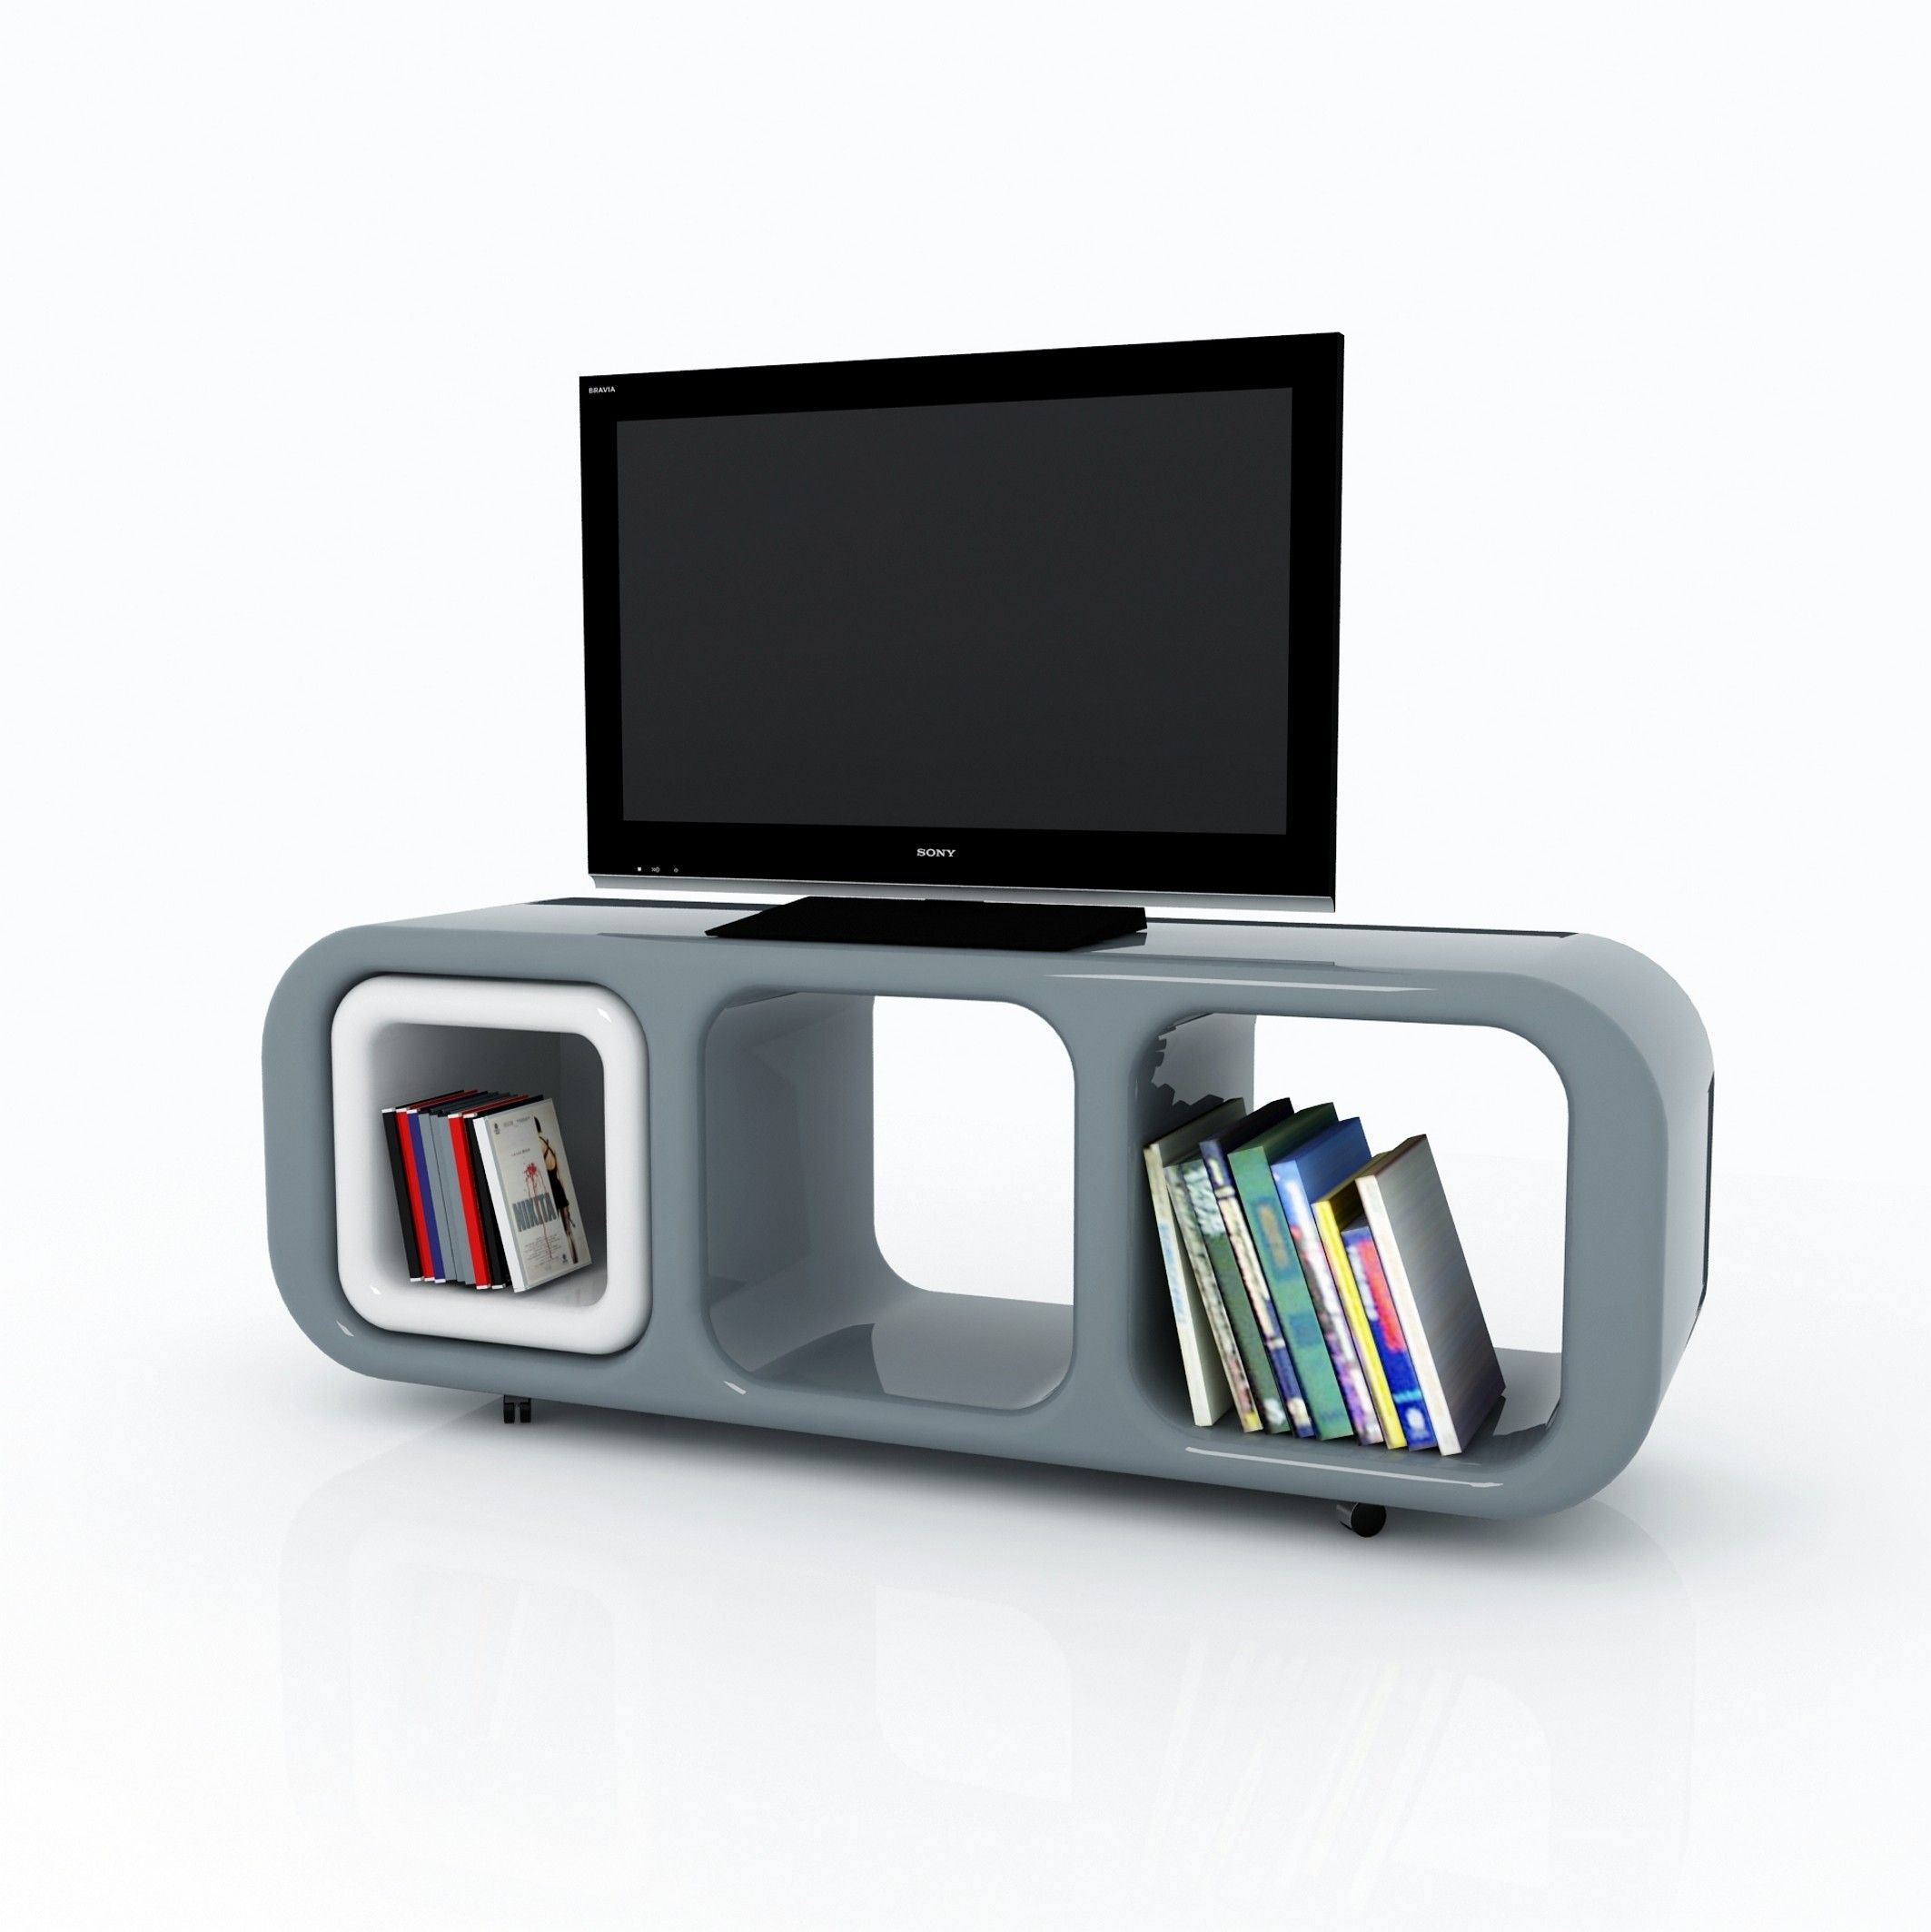 Home > Giorno > Porta TV > Mobile porta tv Eracle design moderno su ...